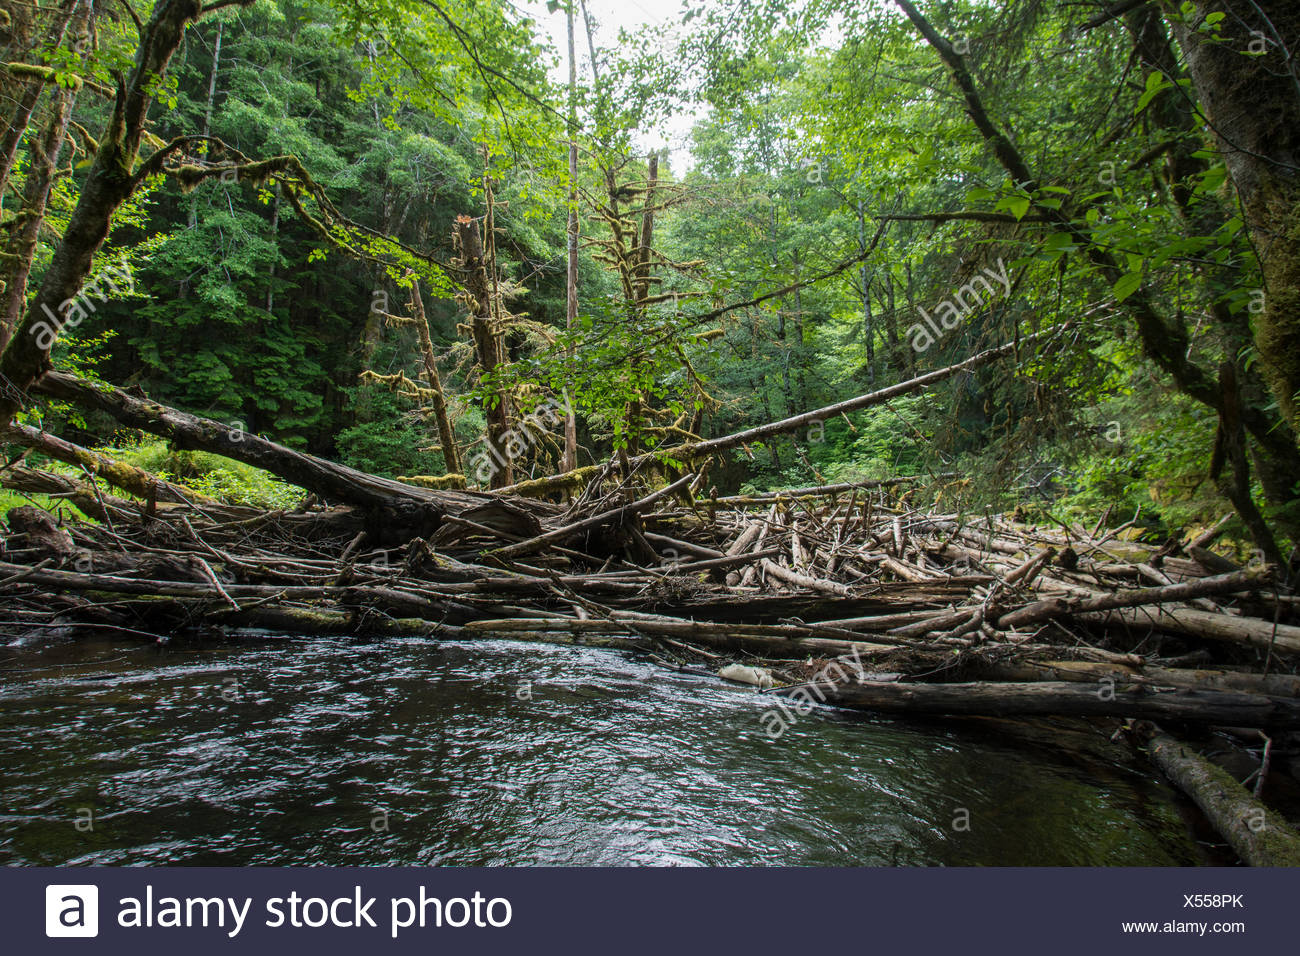 Log jam on Copper River, Moresby Island, Haida Gwaii, formerly known as Queen Charlotte Islands, British Columbia, Canada - Stock Image